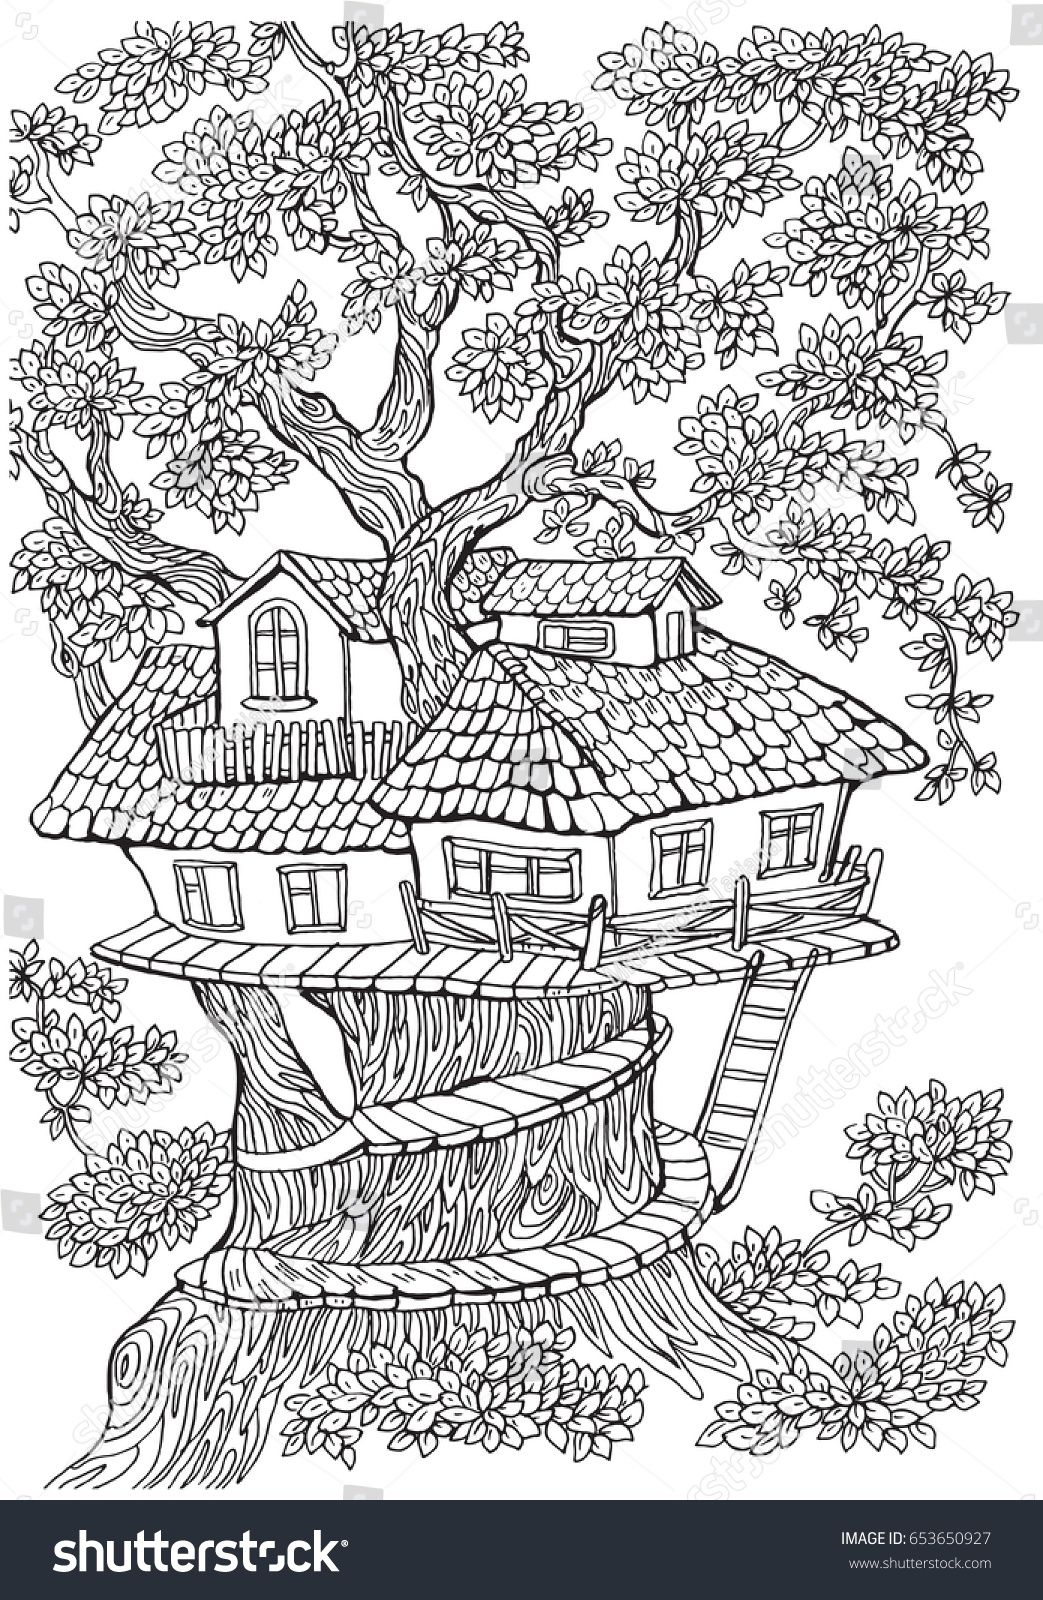 coloring pages for kids and adults .Tree house | coloring pages ...